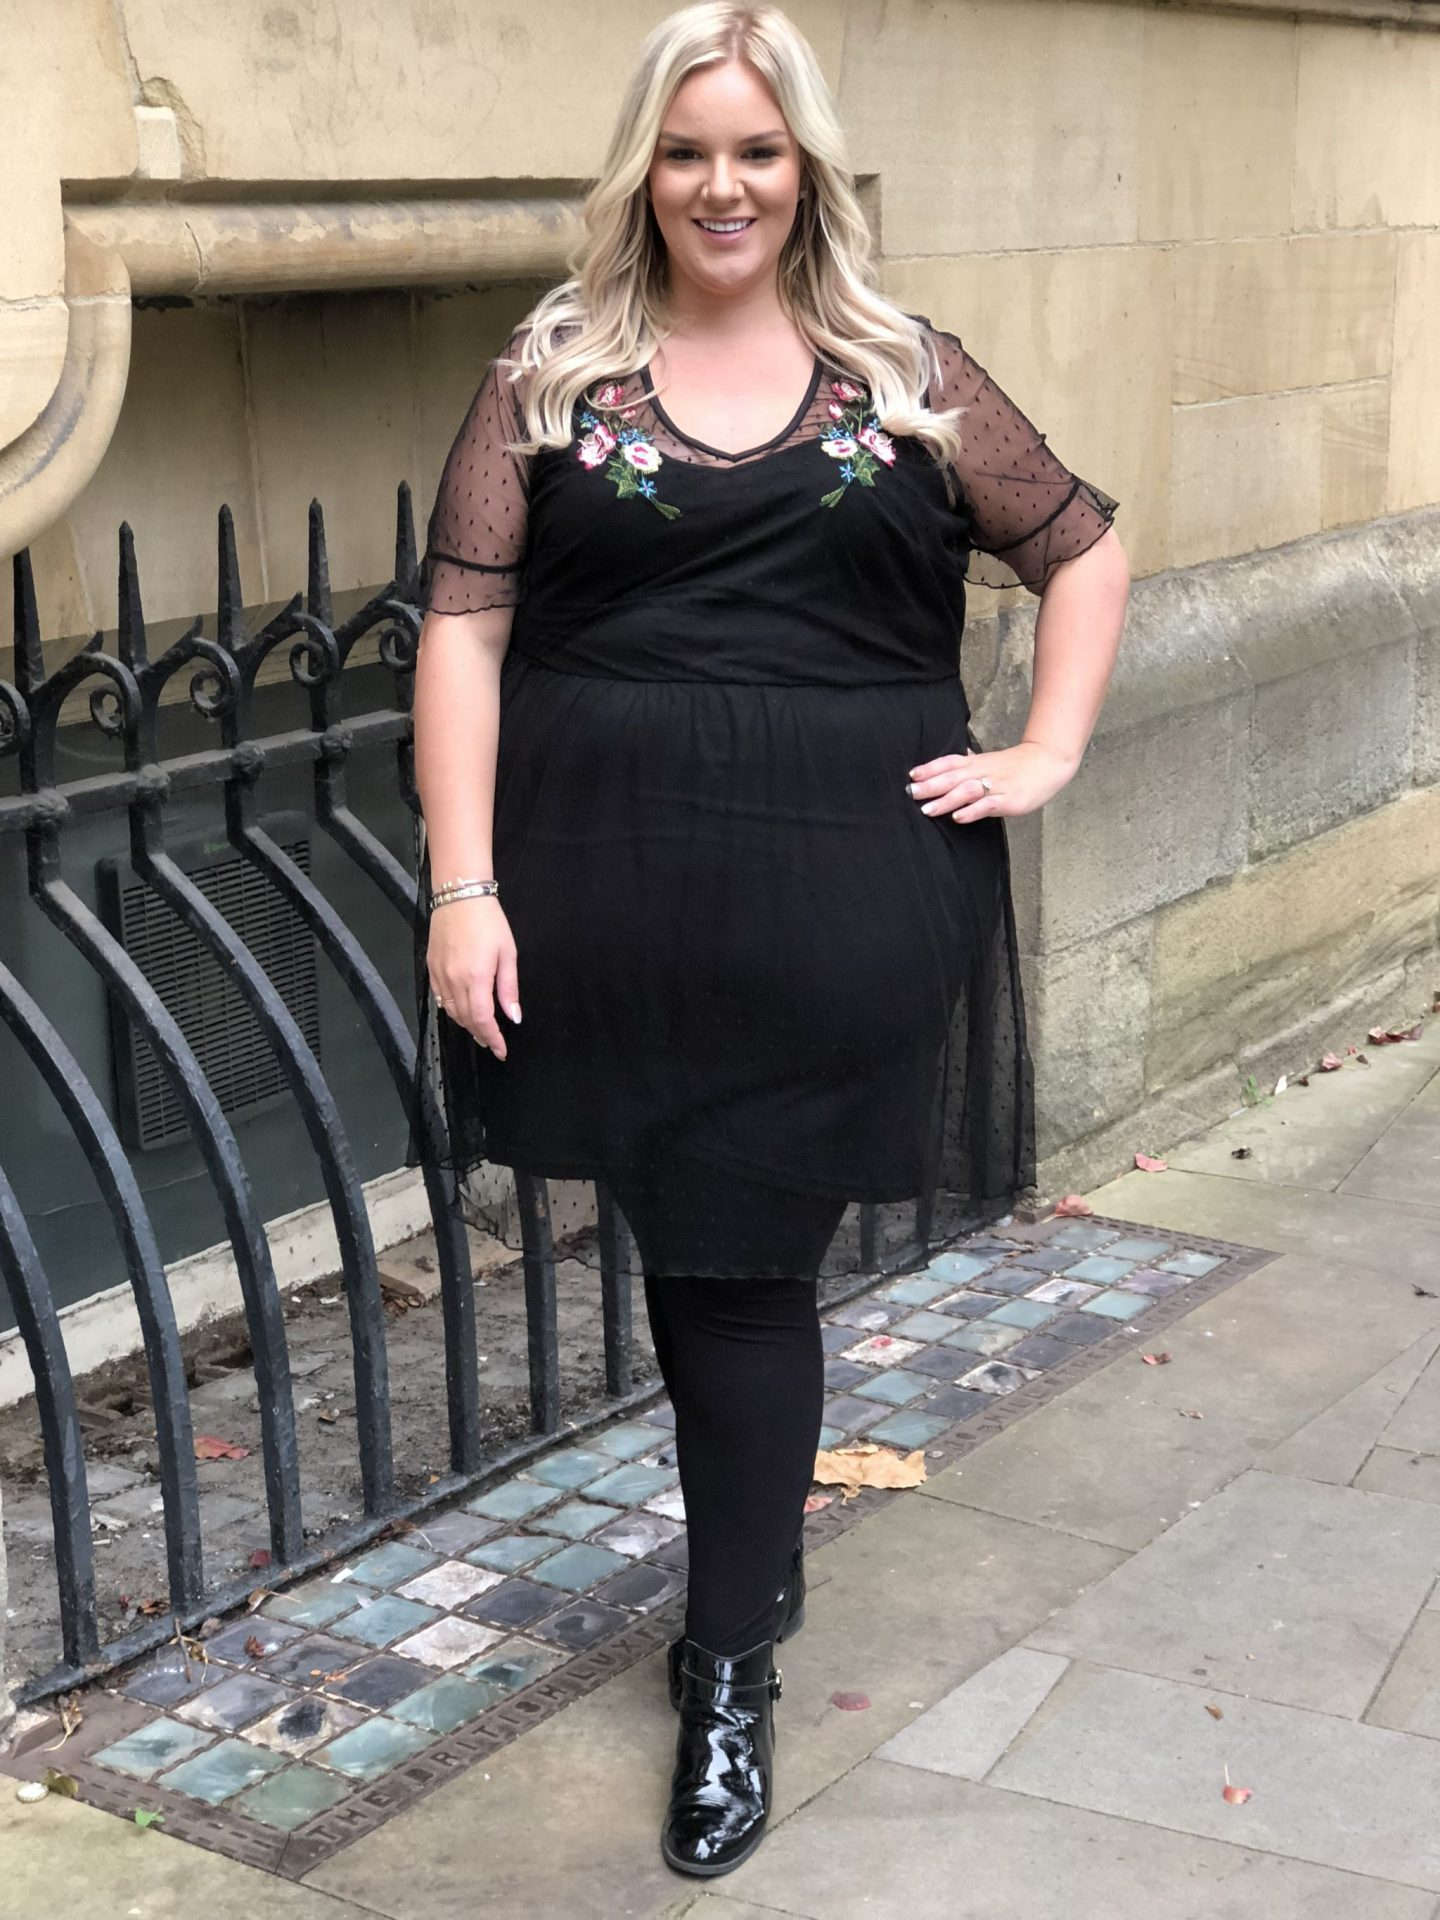 WhatLauraLoves in Manchester wearing a Lovedrobe dress